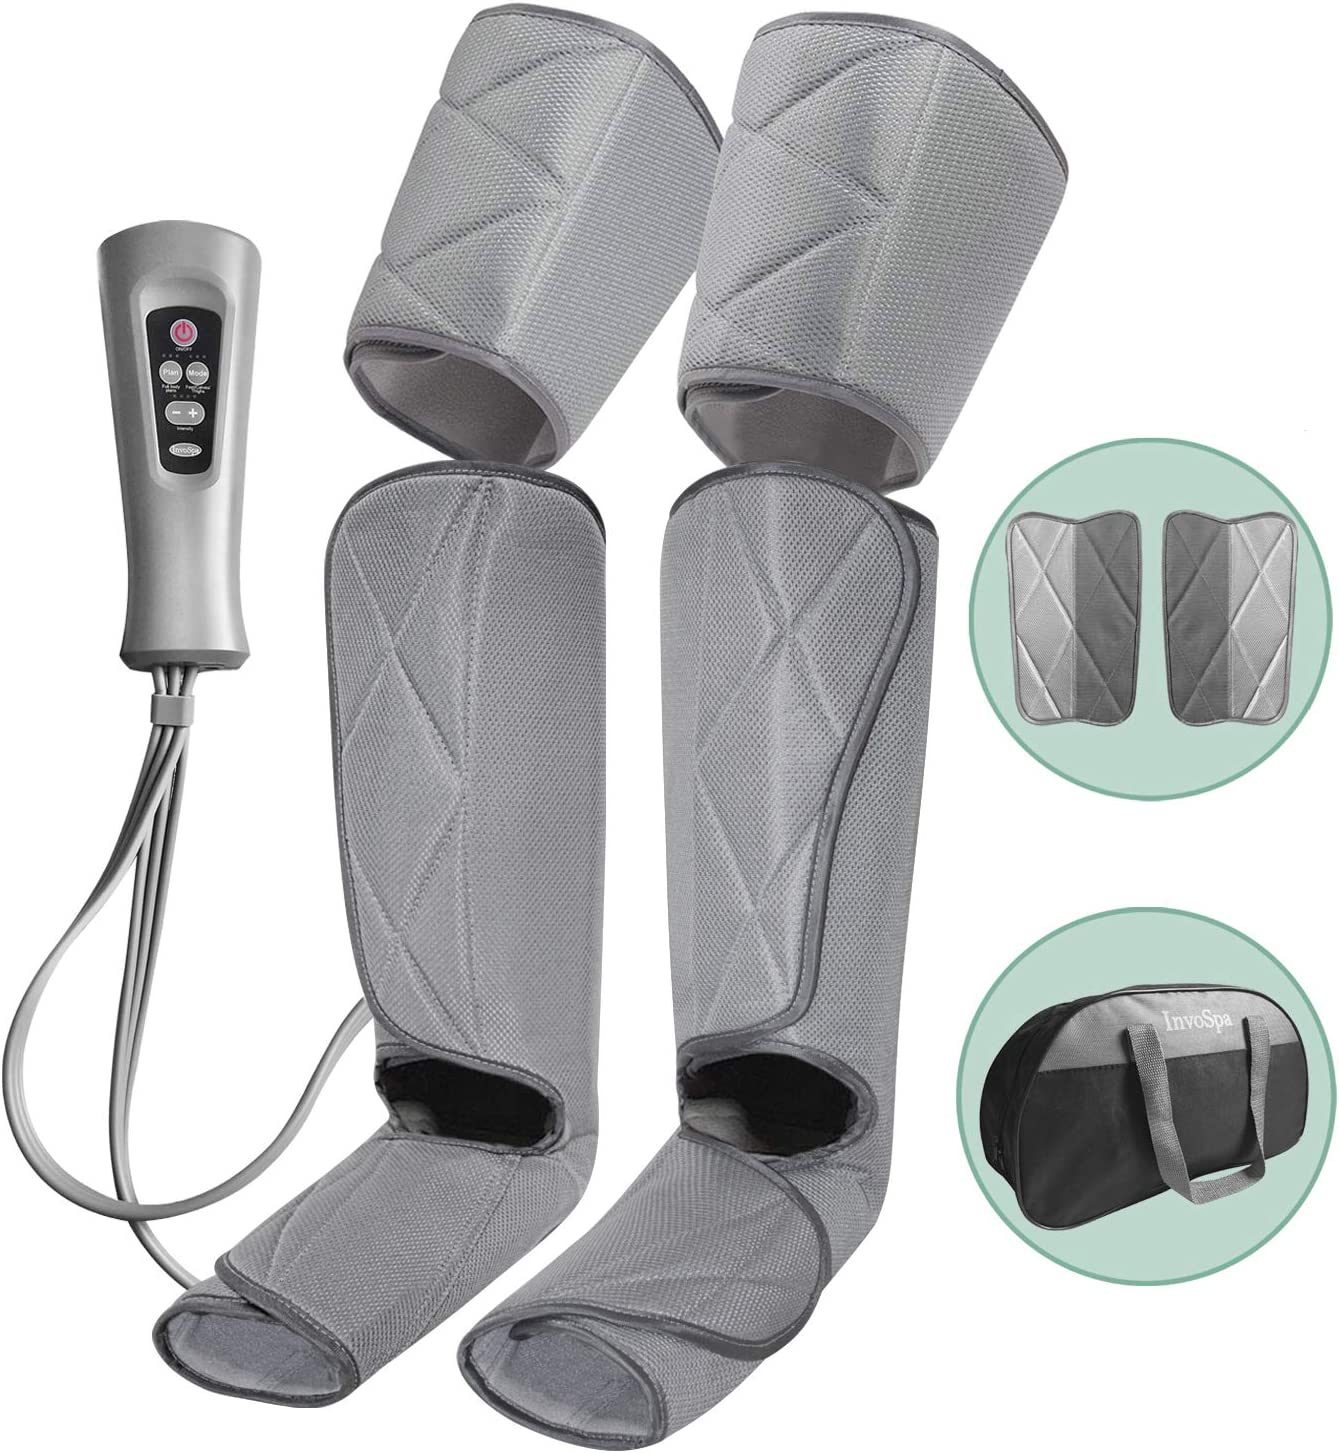 Leg Massager for Circulation – Foot and Calf Massager Air Compression Leg Thigh Wraps Massage Boots Machine for Home Use Relaxation with Controller